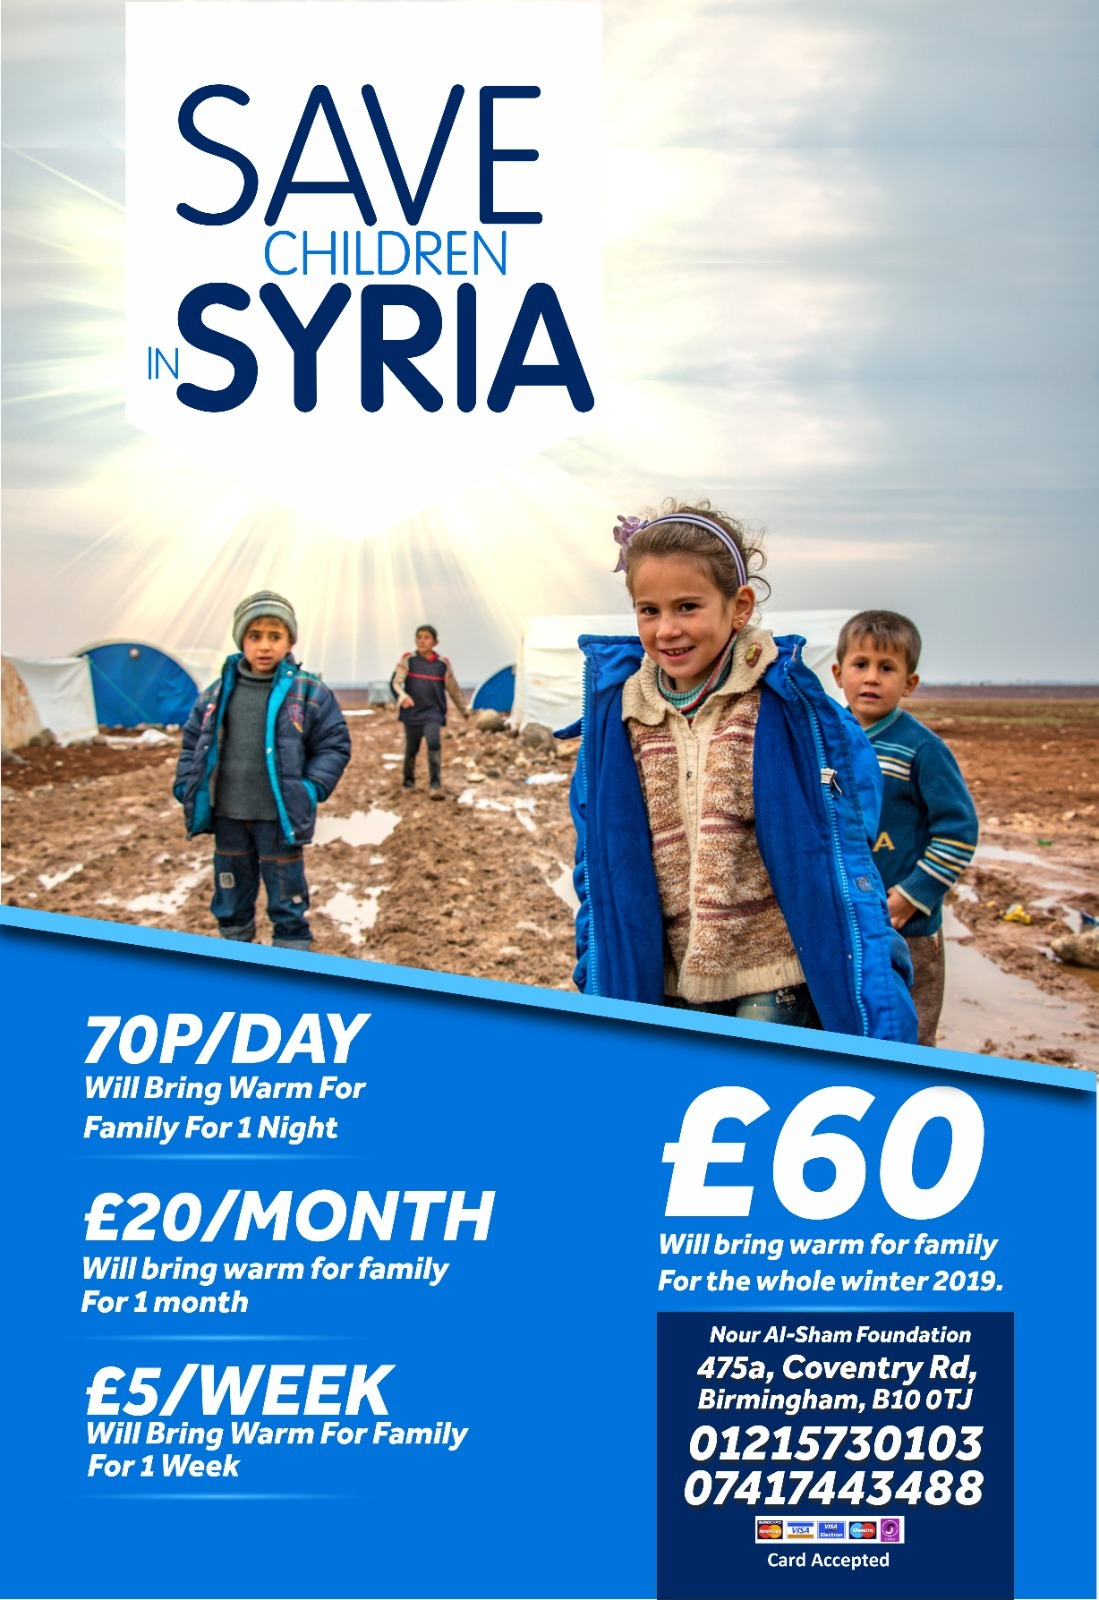 Emergency & Winter Appeal (2020) by Nour Al-Sham Foundation fundraising photo 1